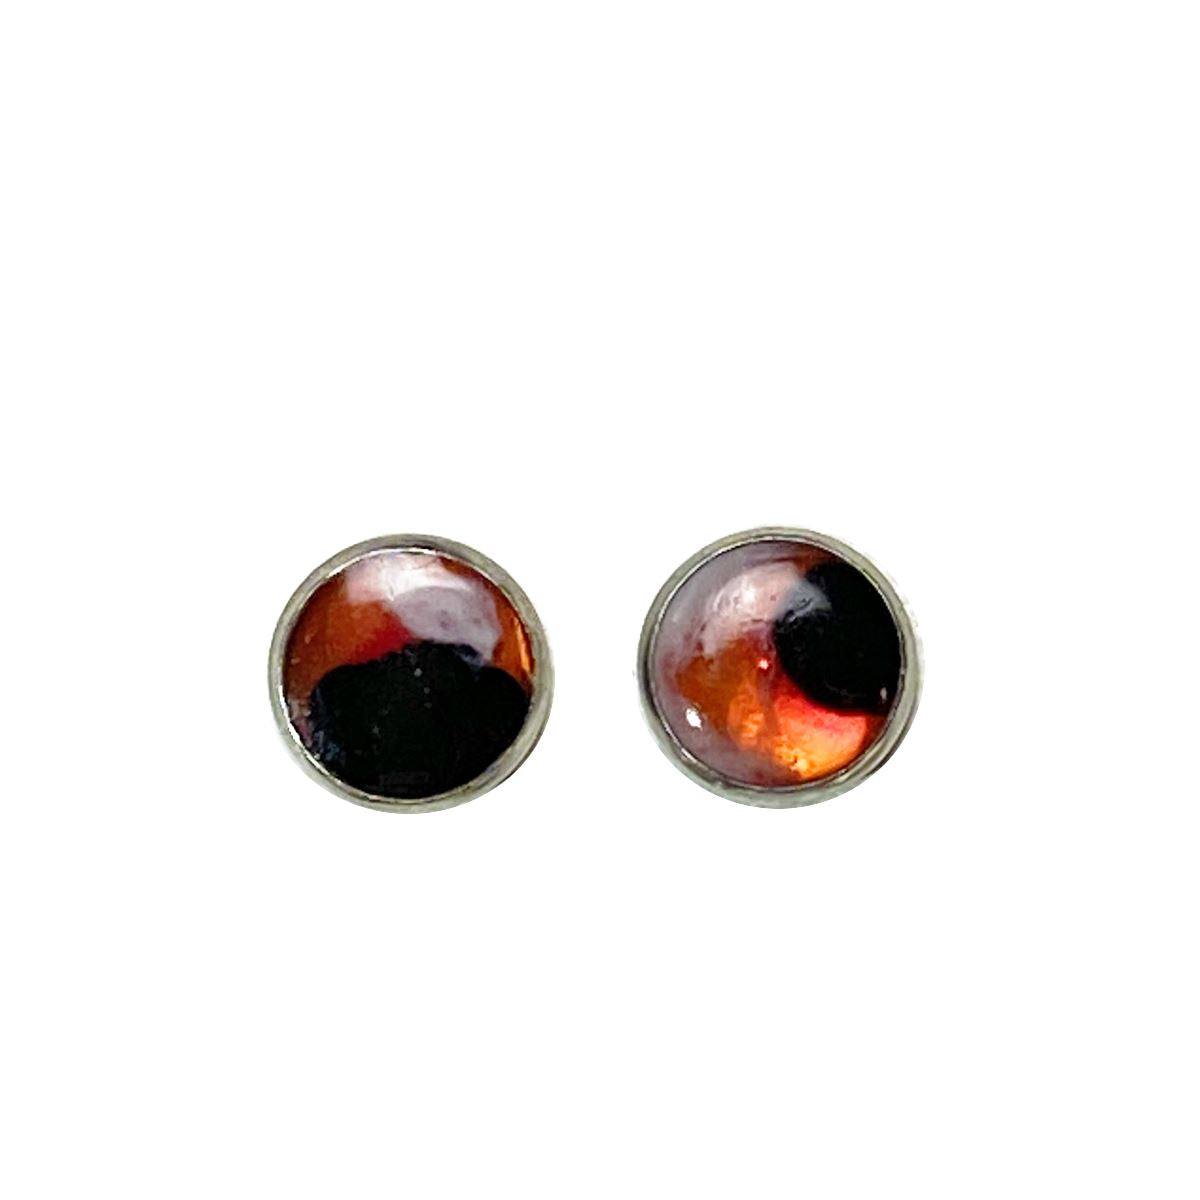 Color Study - pink black white 12mm stud earrings Deanna Dot Store